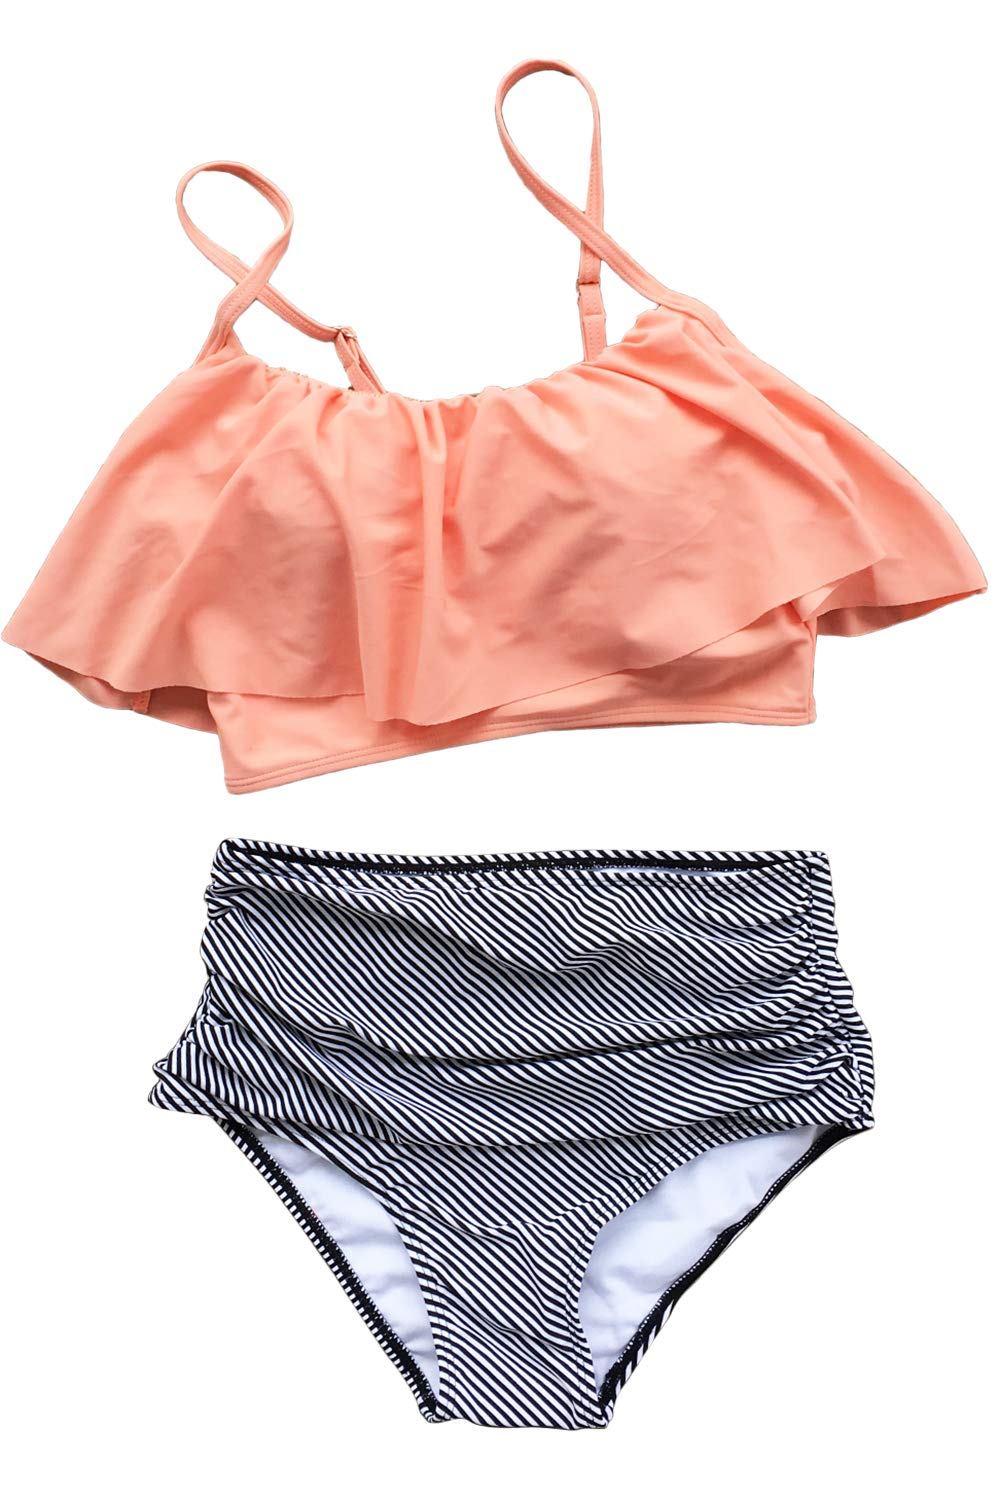 Cupshe Fashion Women Falbala High-waisted Bikini Set (M), Pink Orange